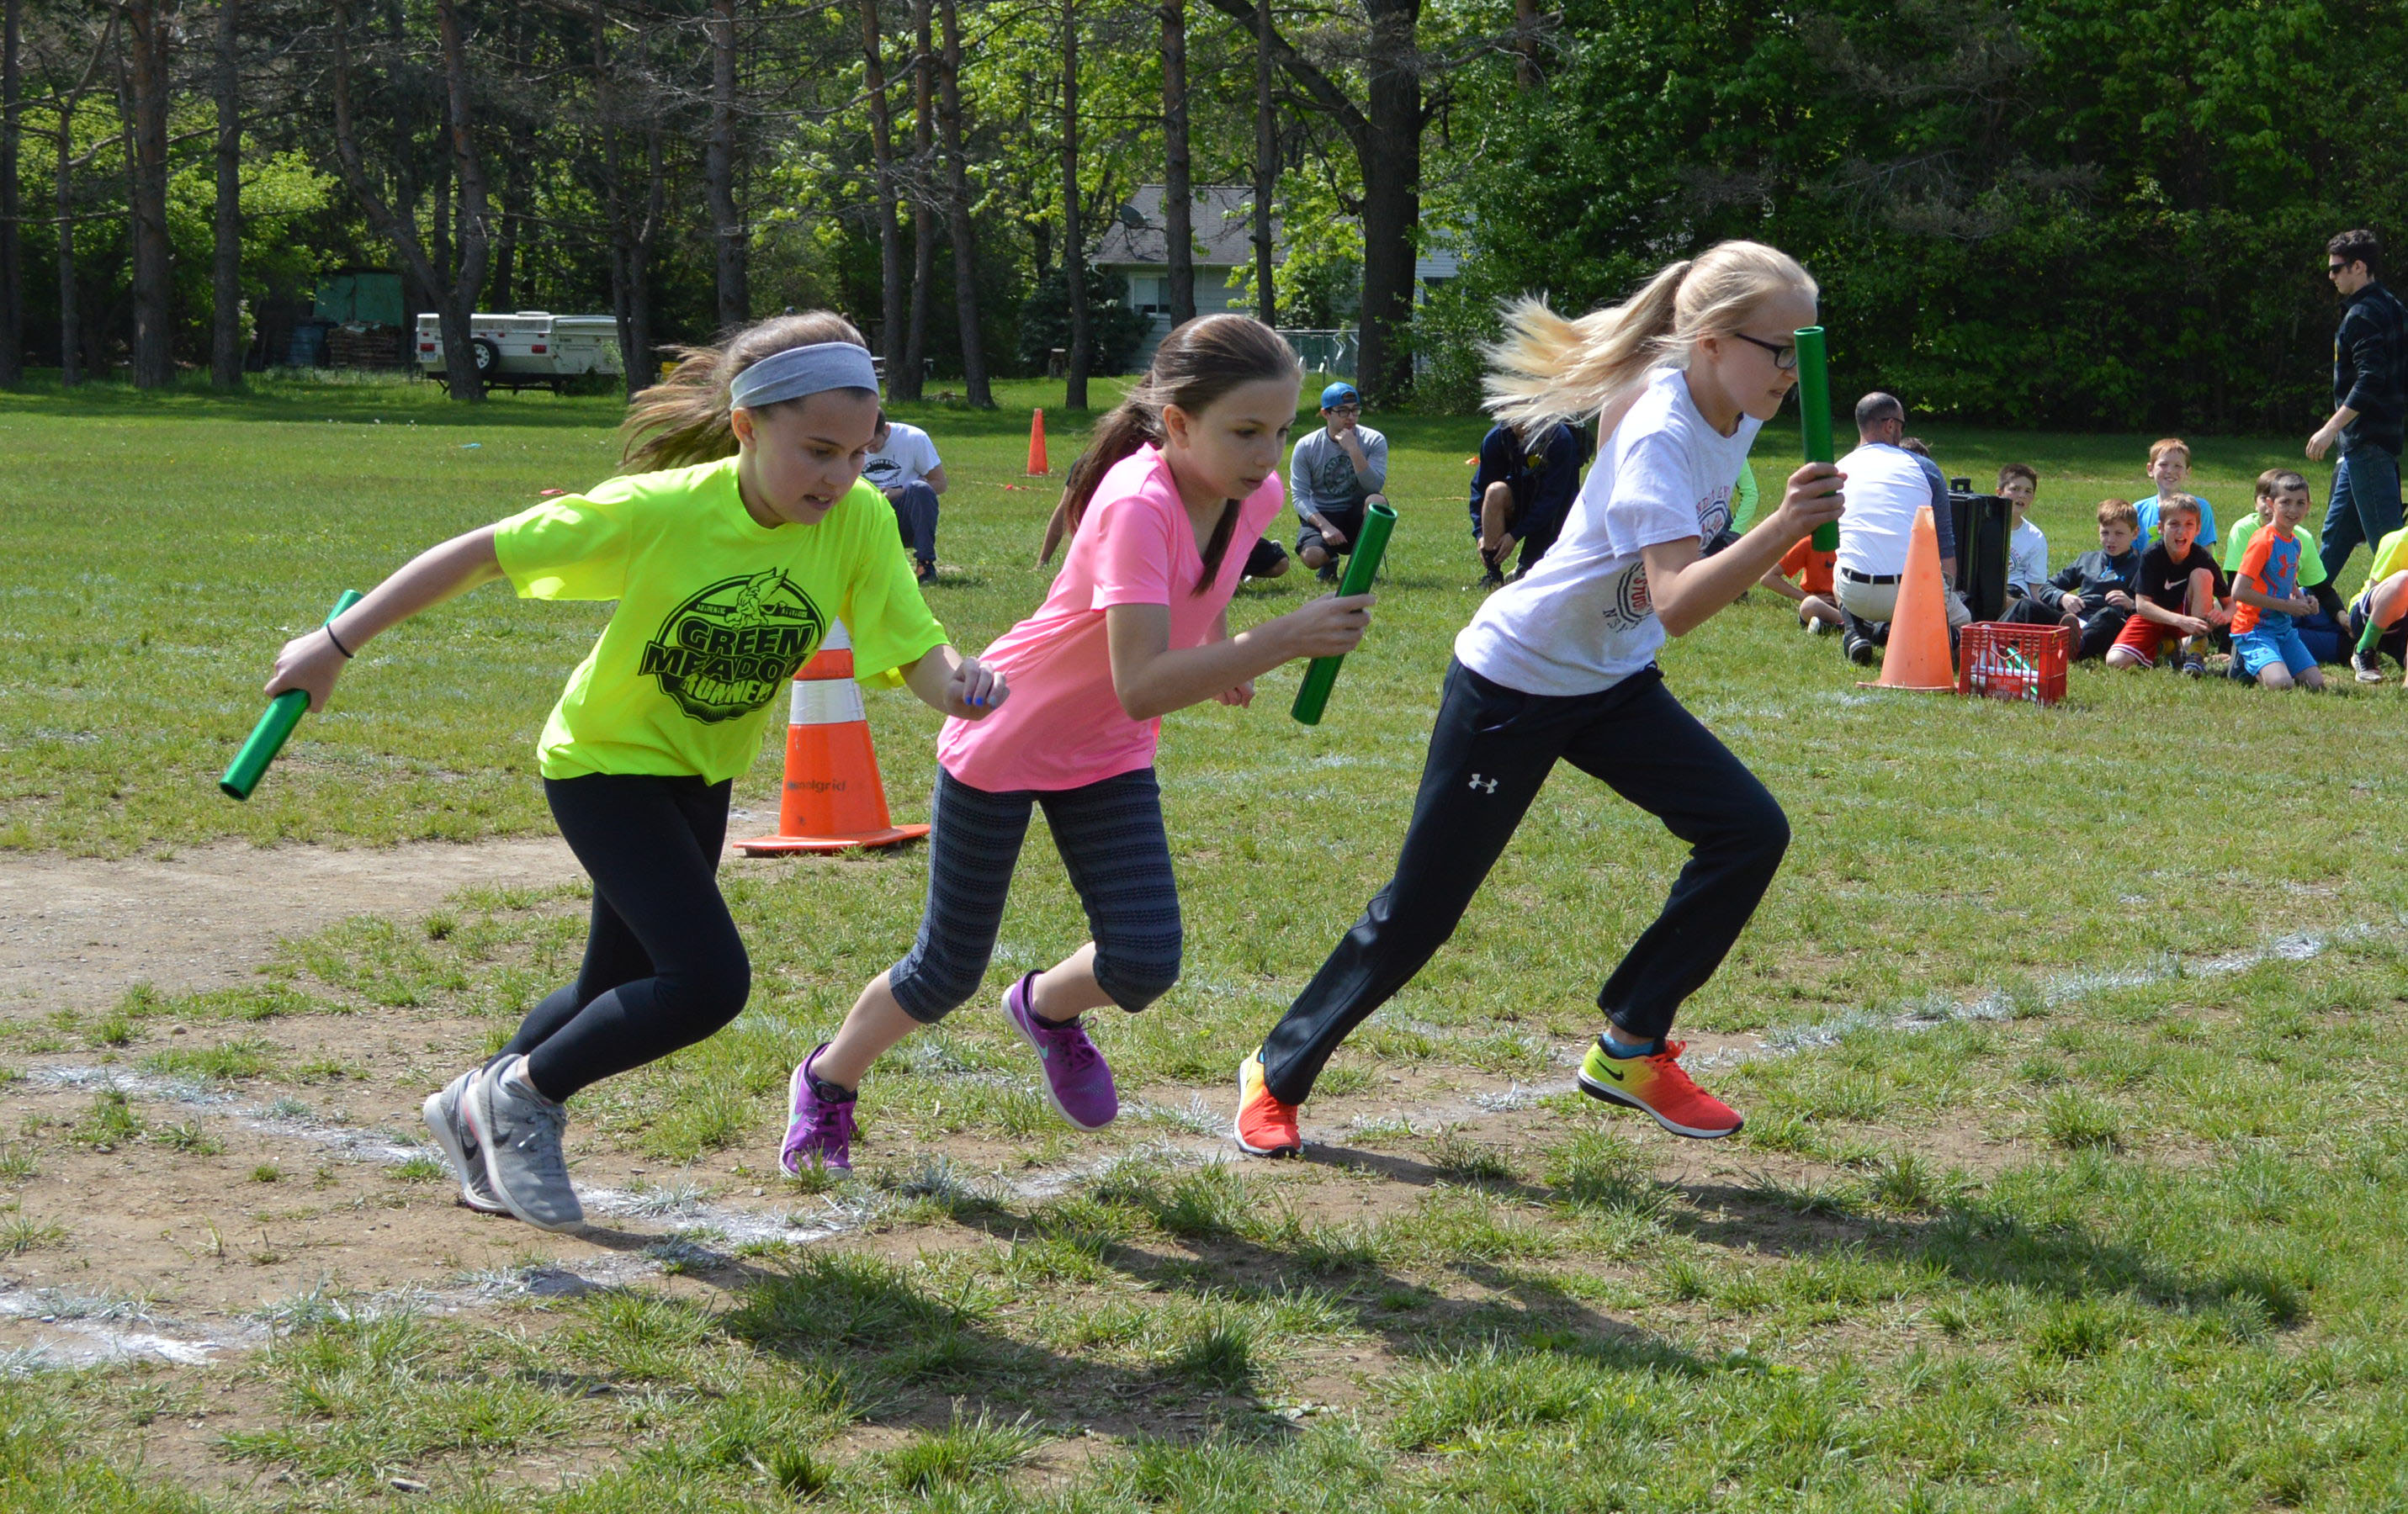 Green Meadow Field Day race